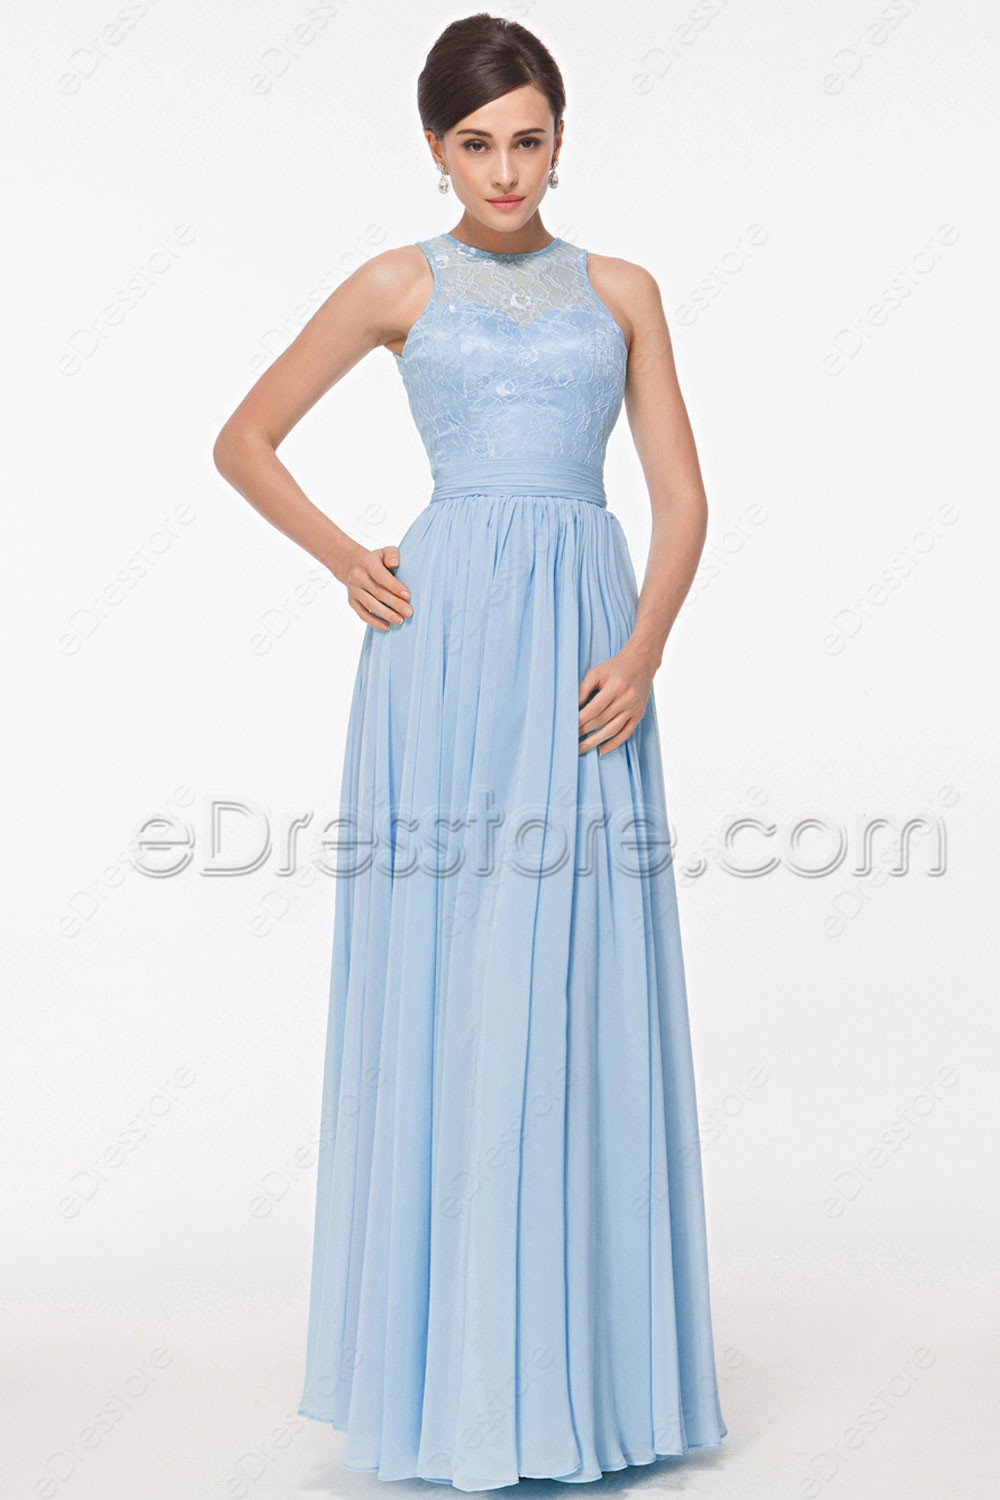 Light blue bridesmaid dresses long discount wedding dresses for Long blue dress for wedding